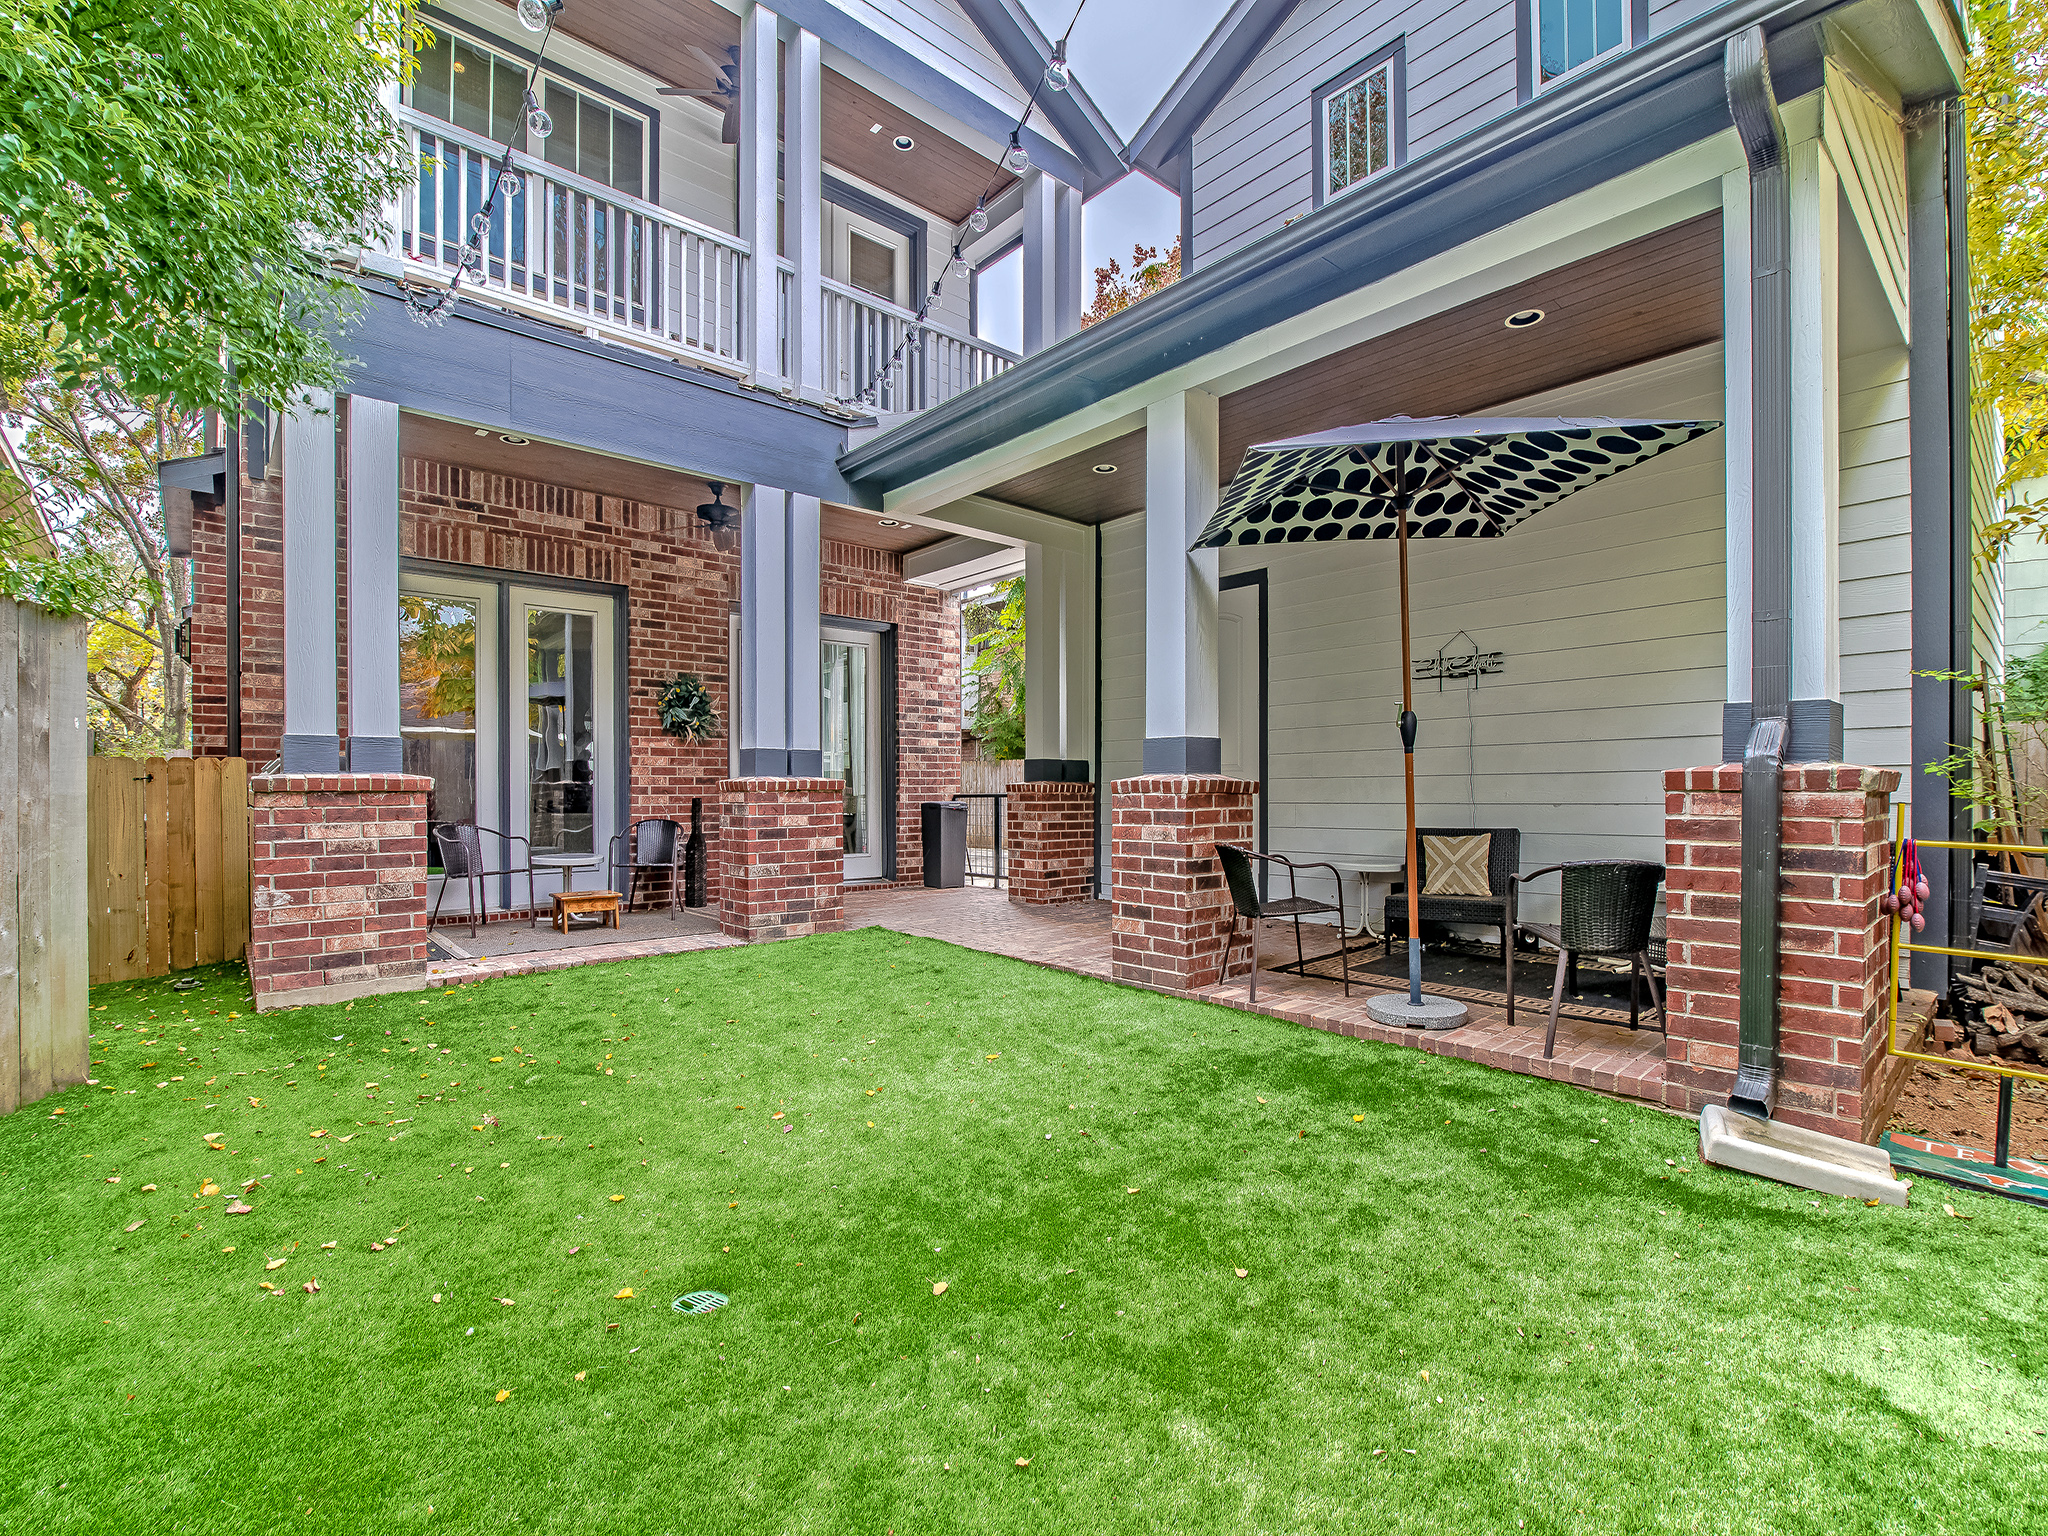 This backyard view shows the detached two car garage with ample storage space inside. Also features an unfinished space above the garage that would make a wonderful rental unit, game room or quarters for visitors.